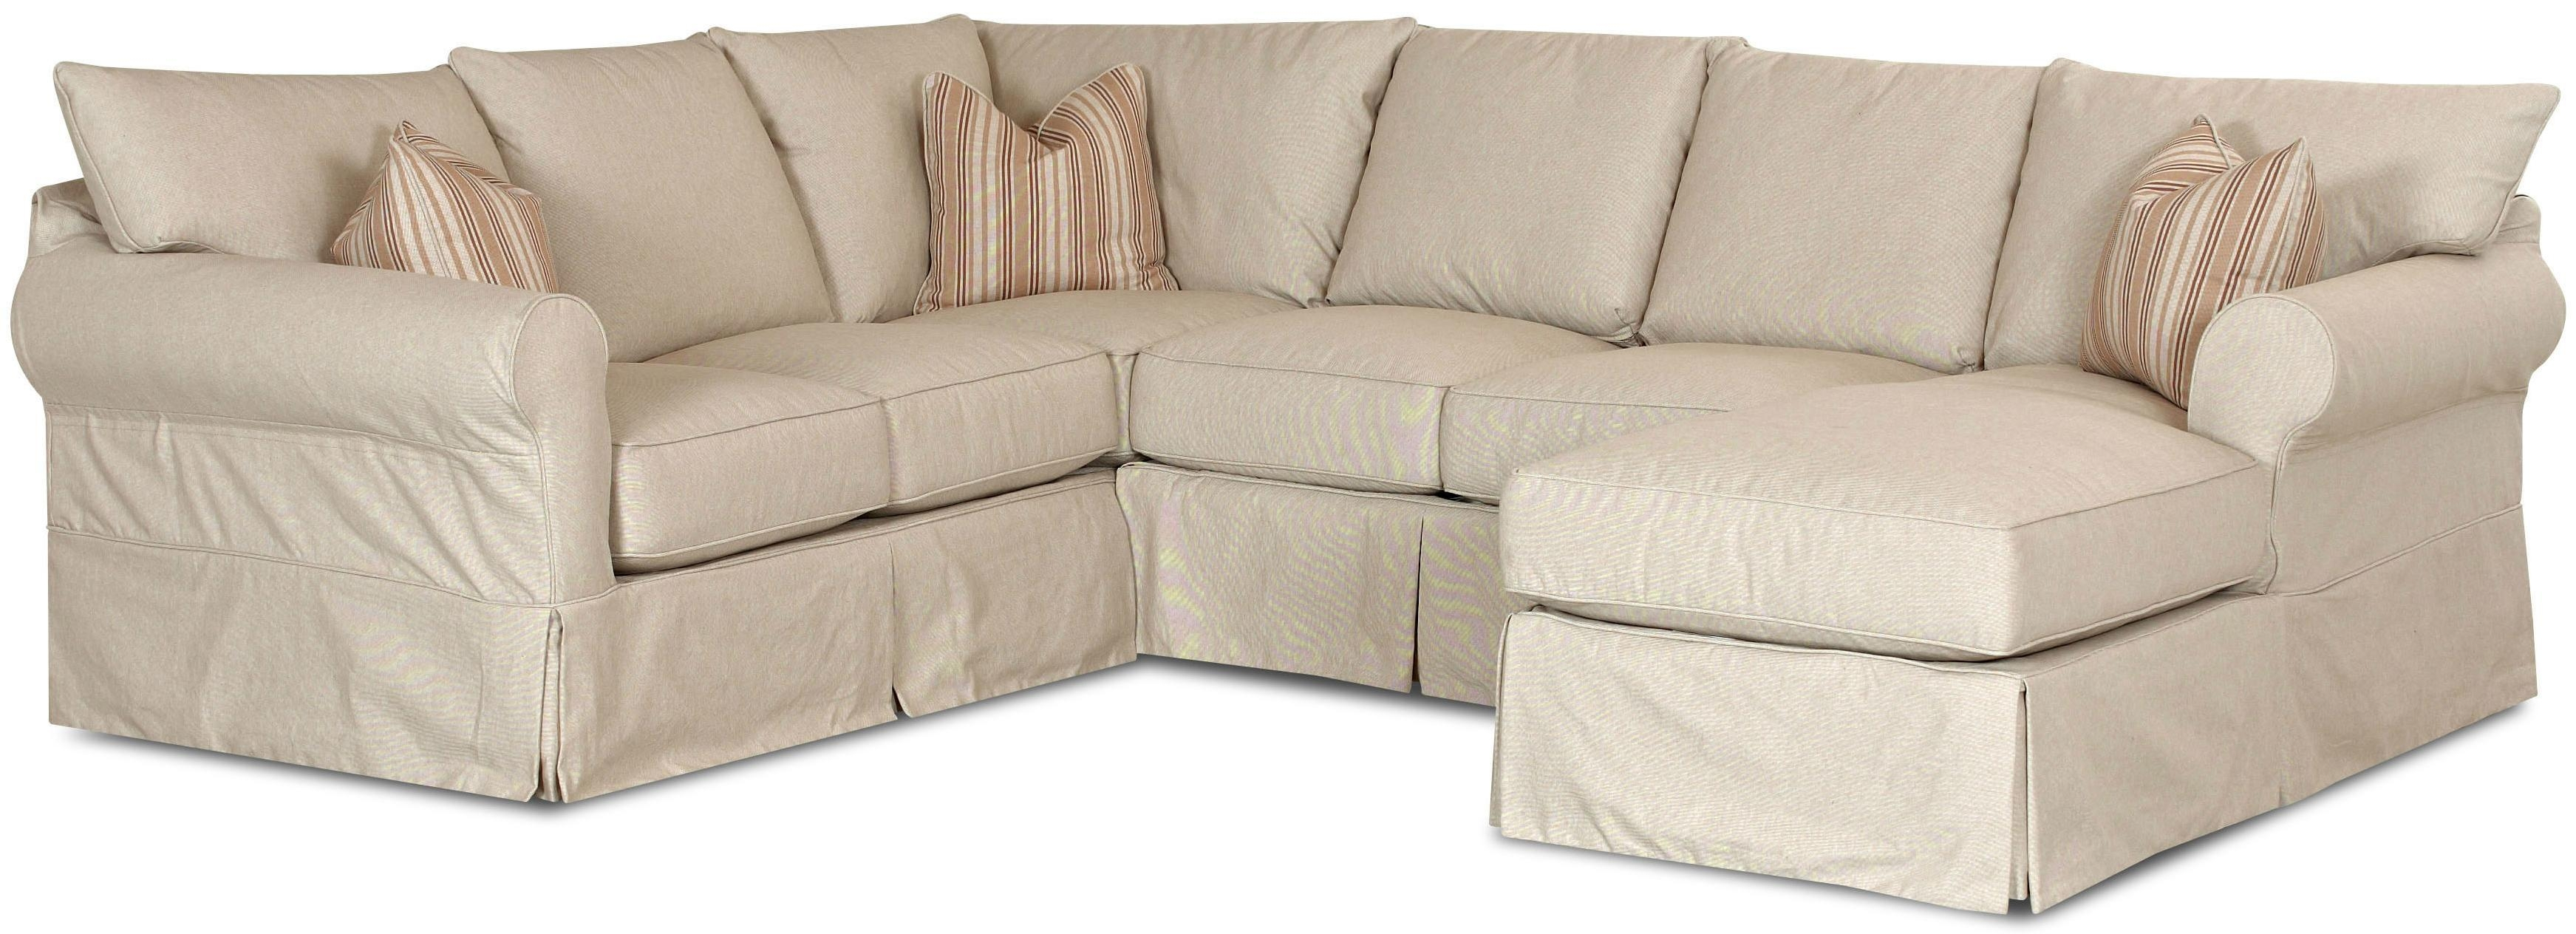 Inspirations: Interesting Furniture Sectional Sofa Slipcovers For For Chaise Sectional Slipcover (Image 8 of 15)